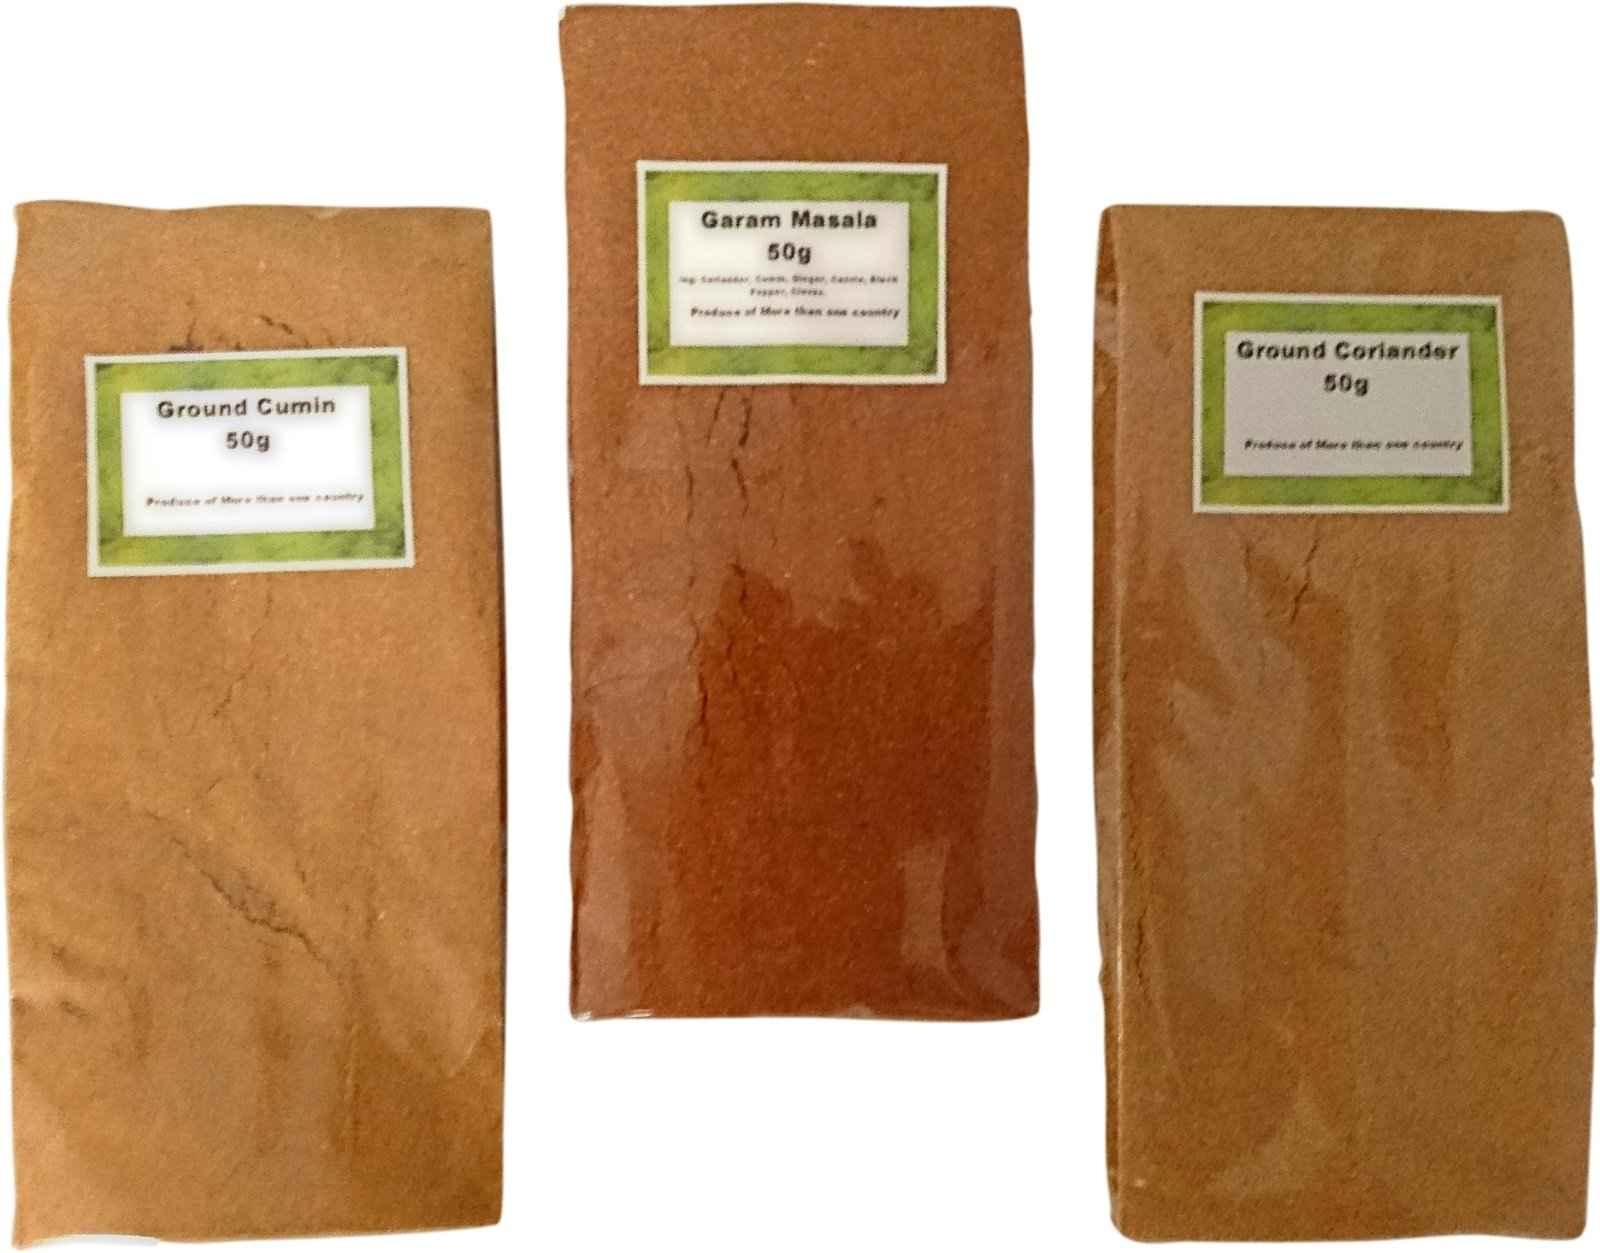 Authentic Indian Spice Gift Set Curry Spice KIT - Makes UP to 24 CURRIES - Quality Spices with Free Post 4